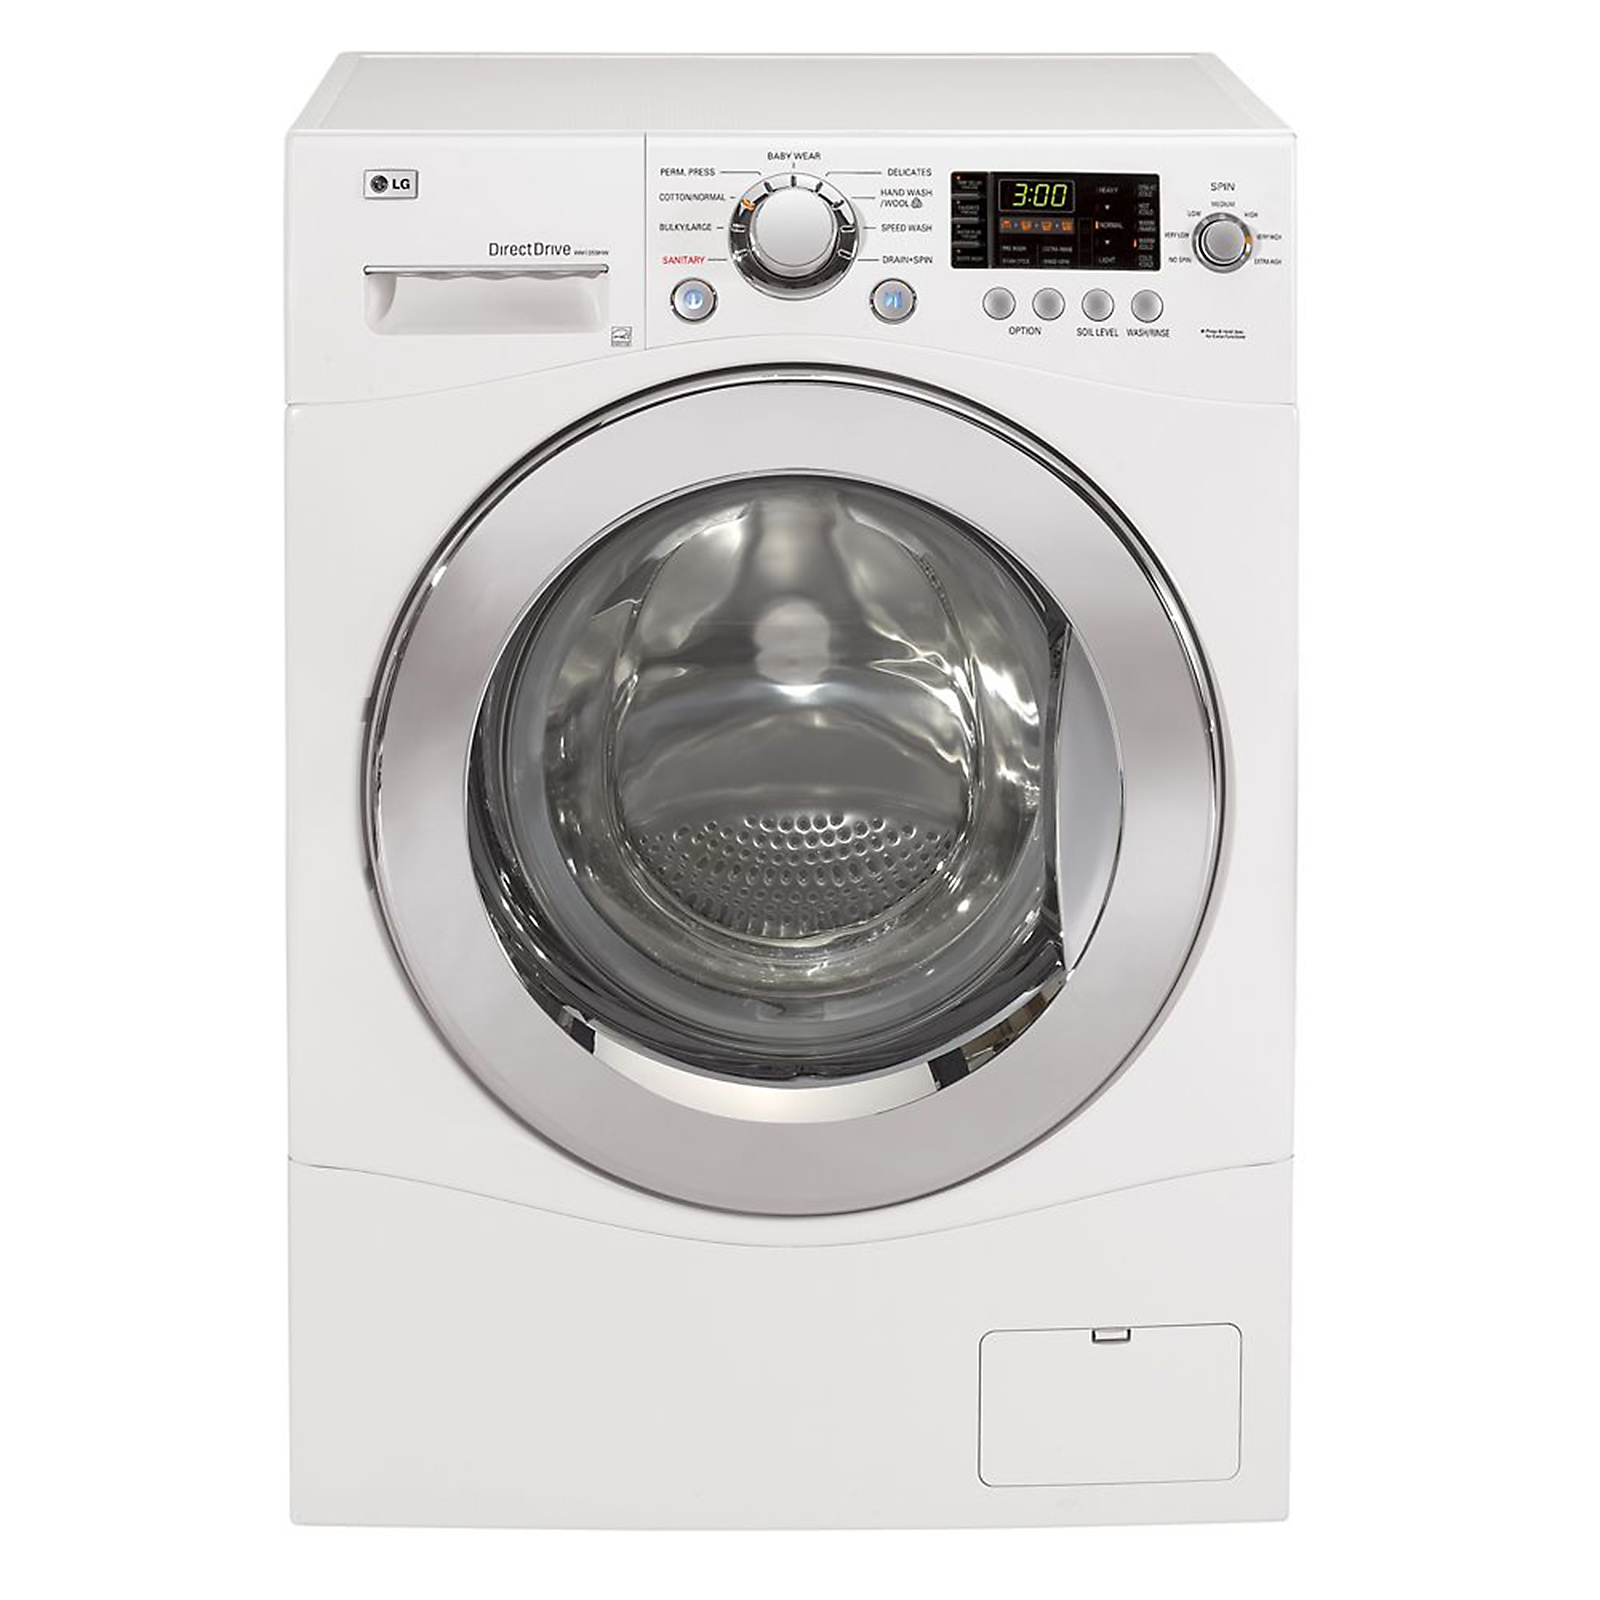 Lg - Wm1355hw 2.3 Cu. Ft. Compact Front-load Washer White Sears Outlet